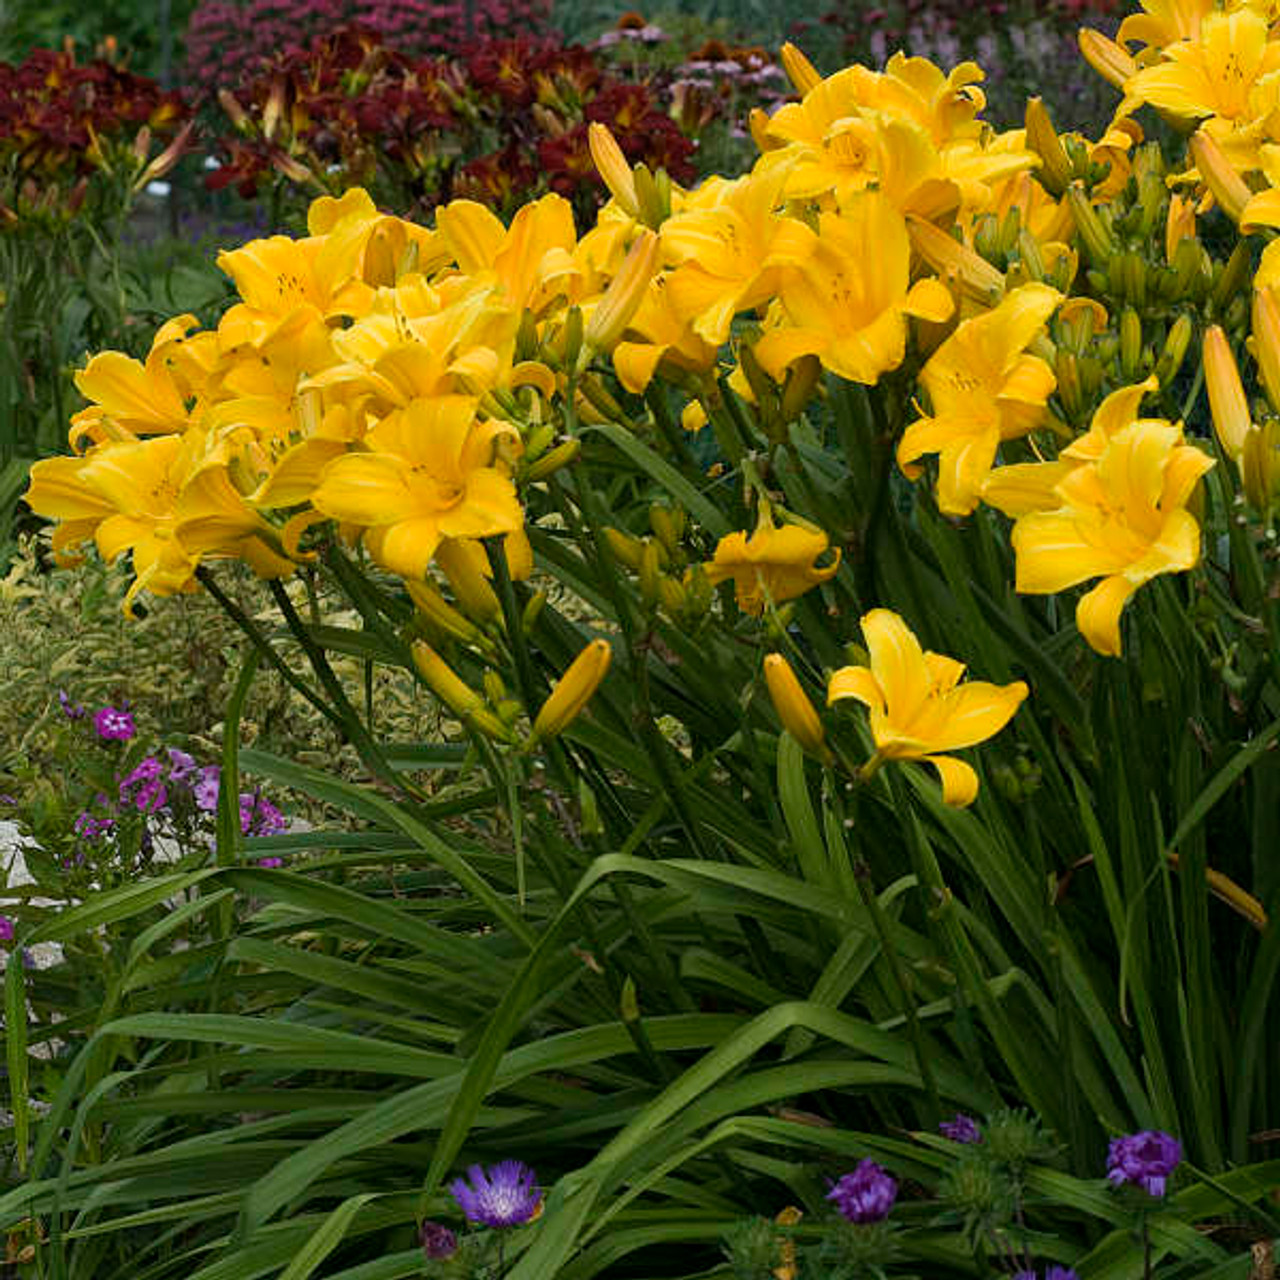 Hemerocallis 'Buttered Popcorn' Photos courtesy of Walters Gardens, Inc.